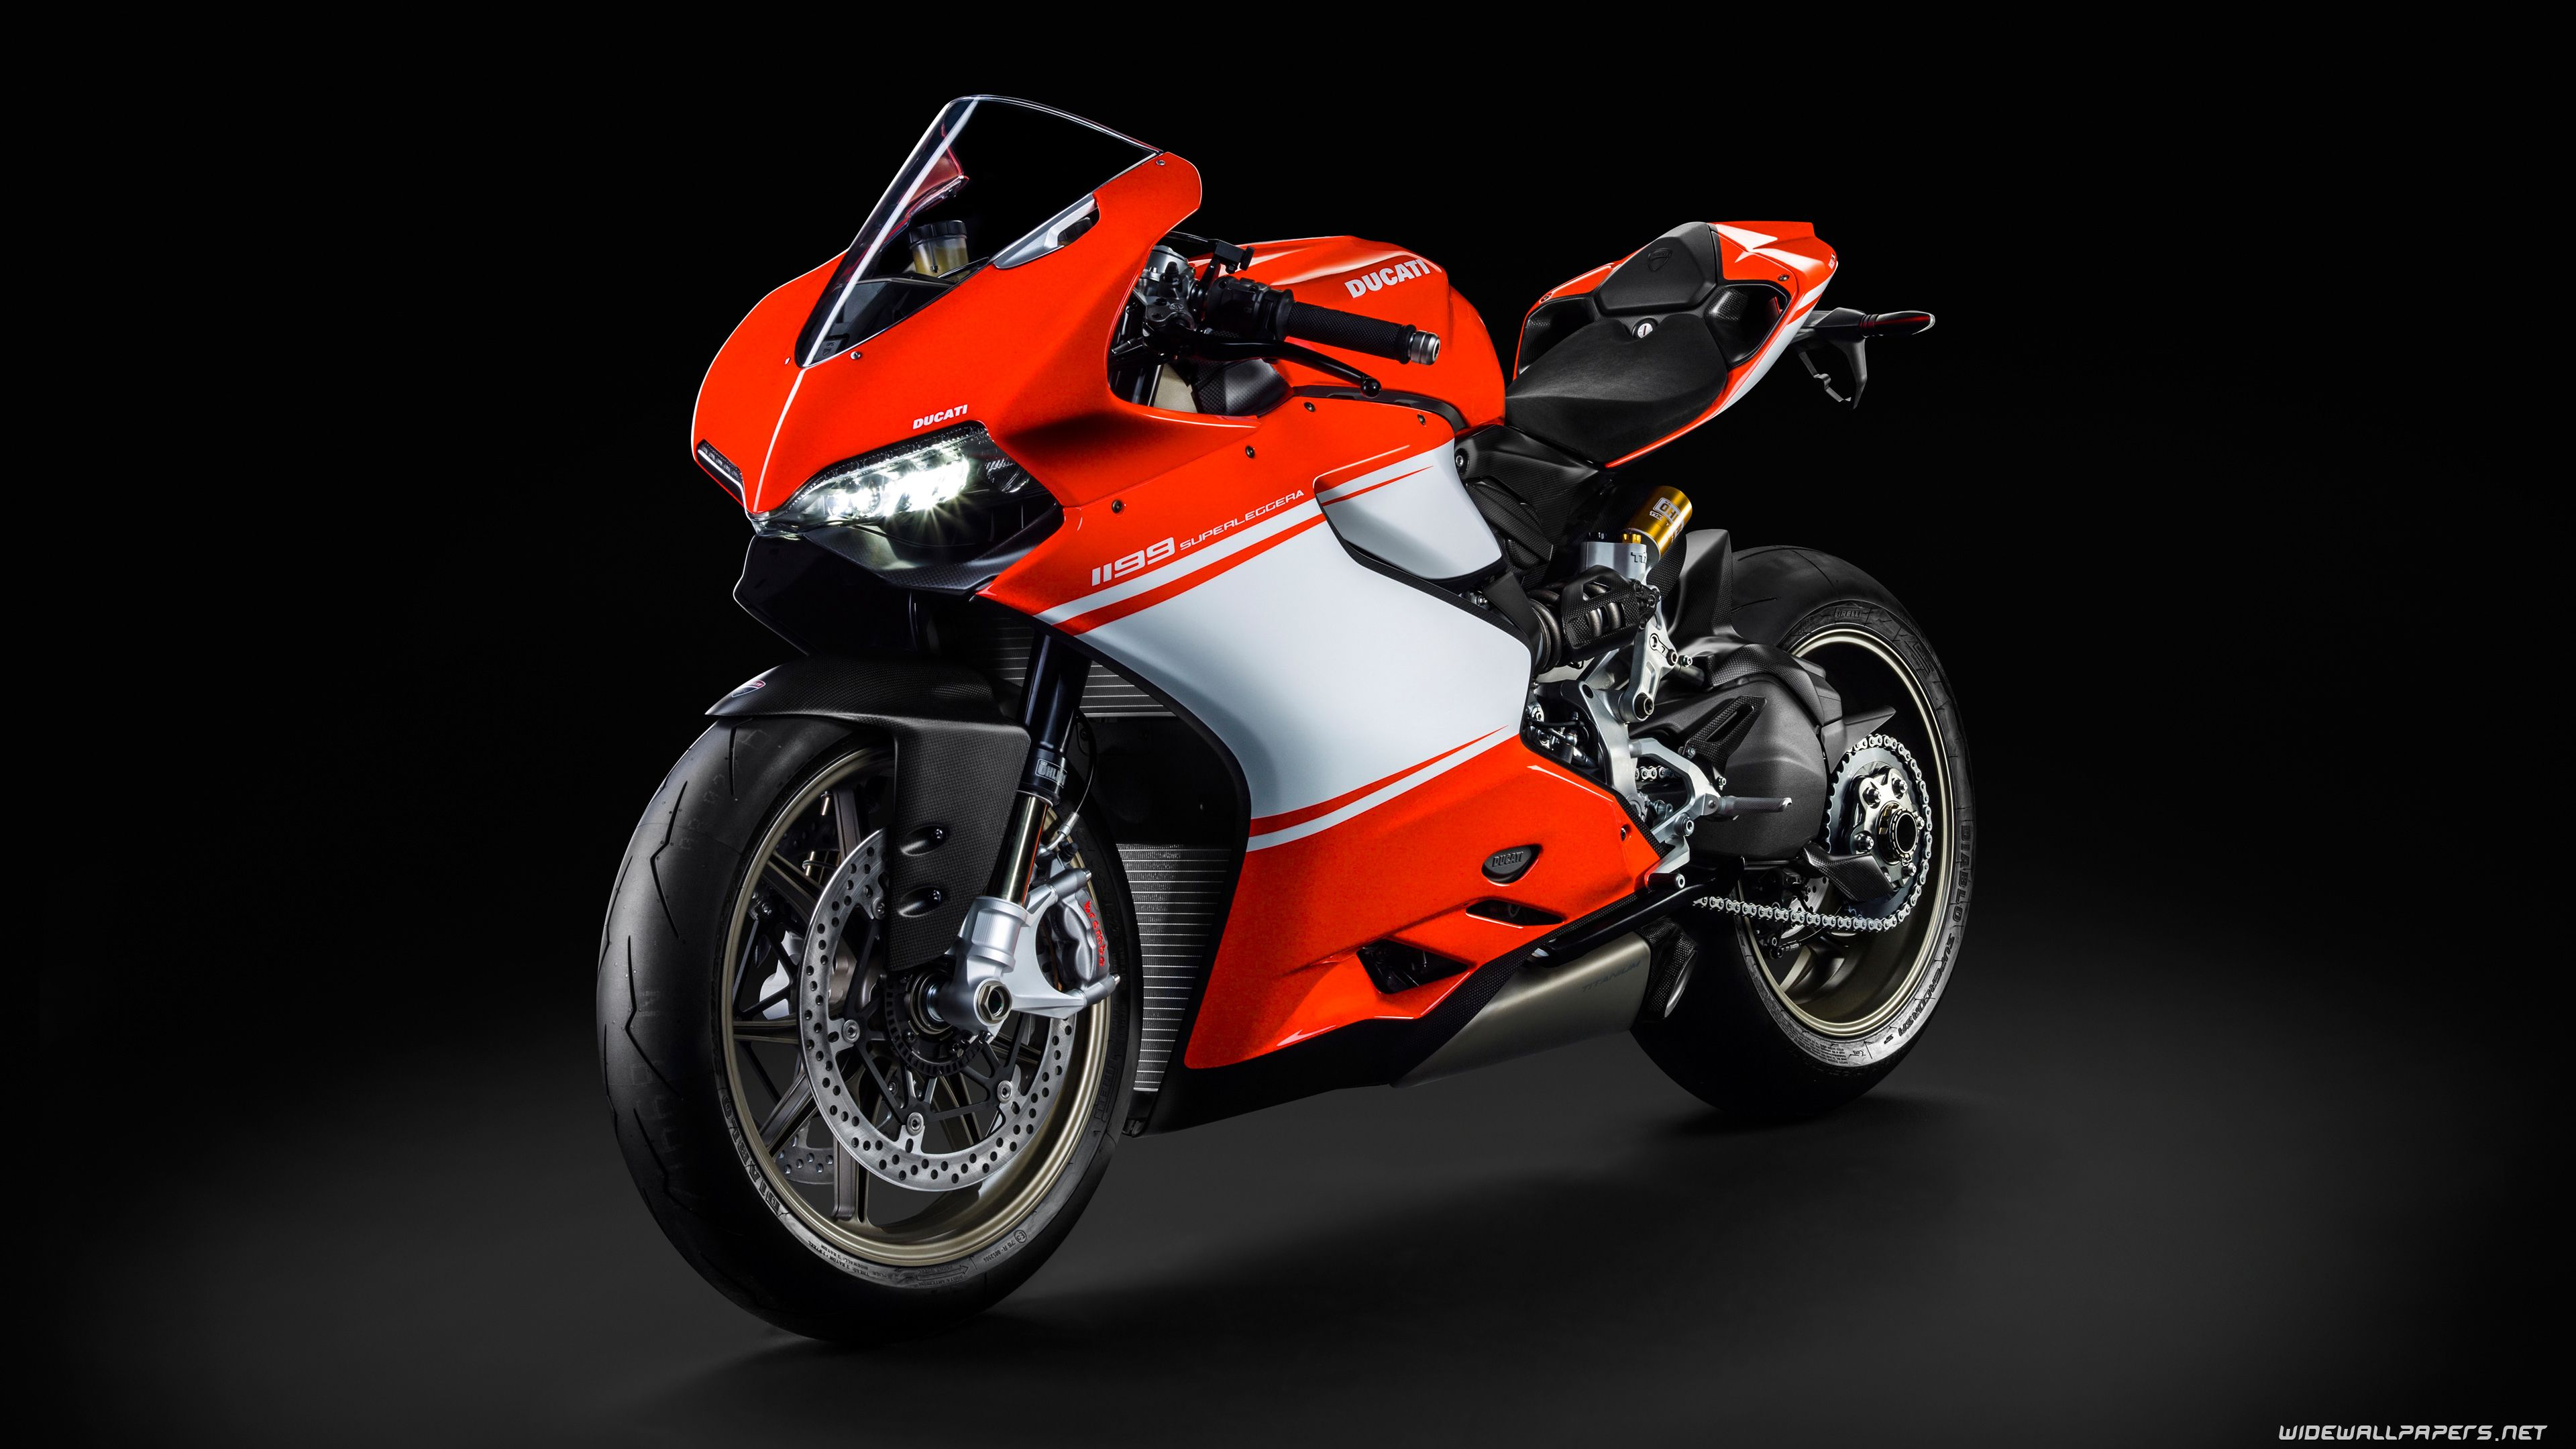 Ducati 1199 Superleggera motorcycle desktop wallpapers 4K ...